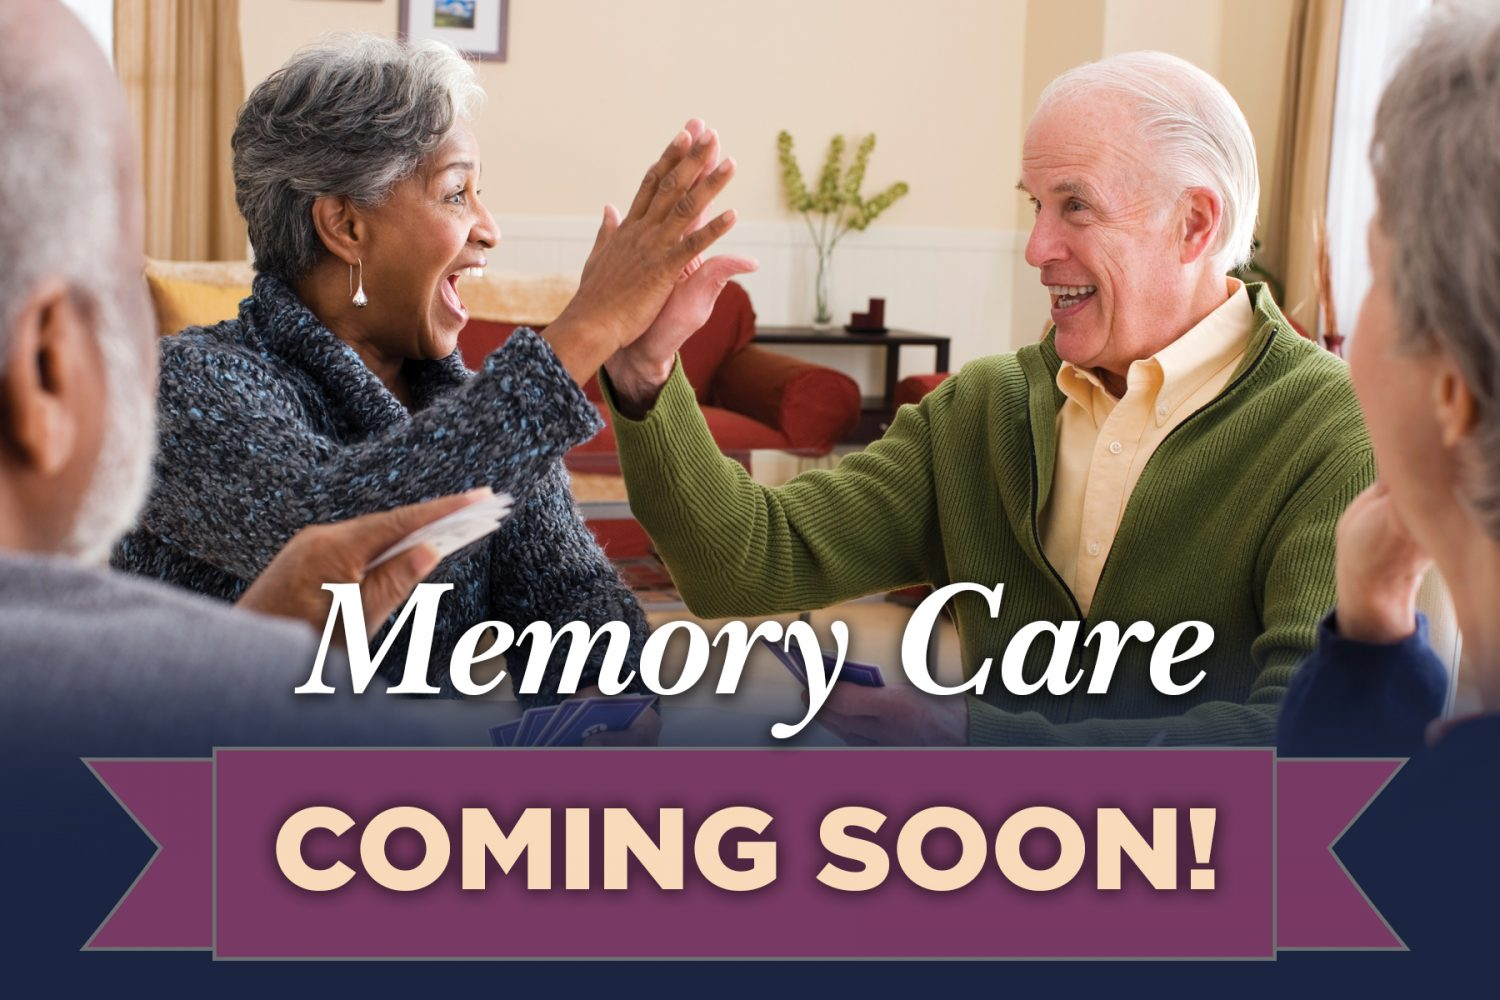 John Evans Receives Memory Care Approval